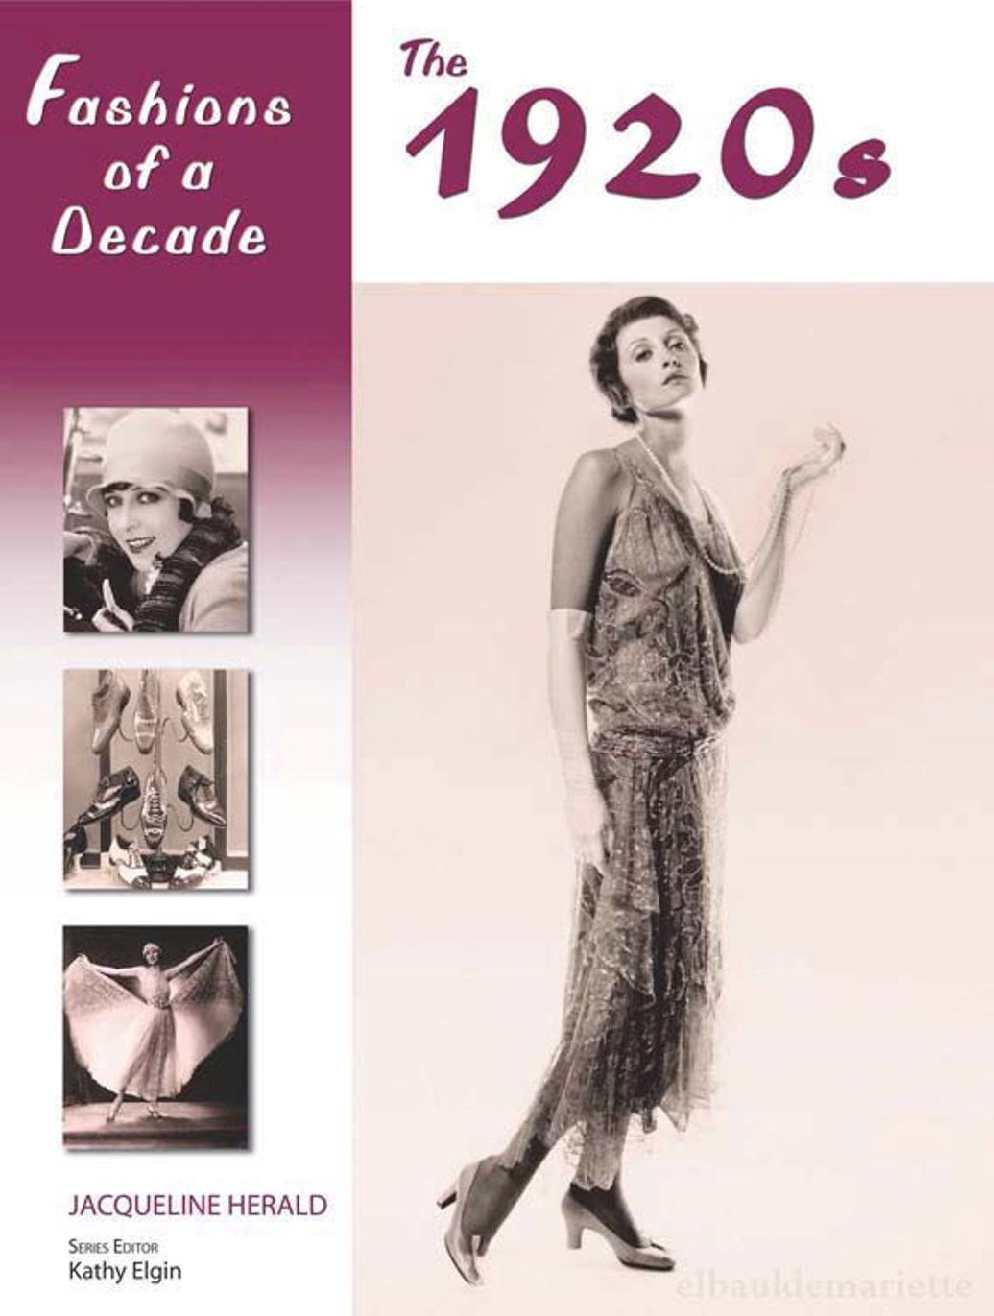 Calaméo - Fashions of a Decade the 1920's